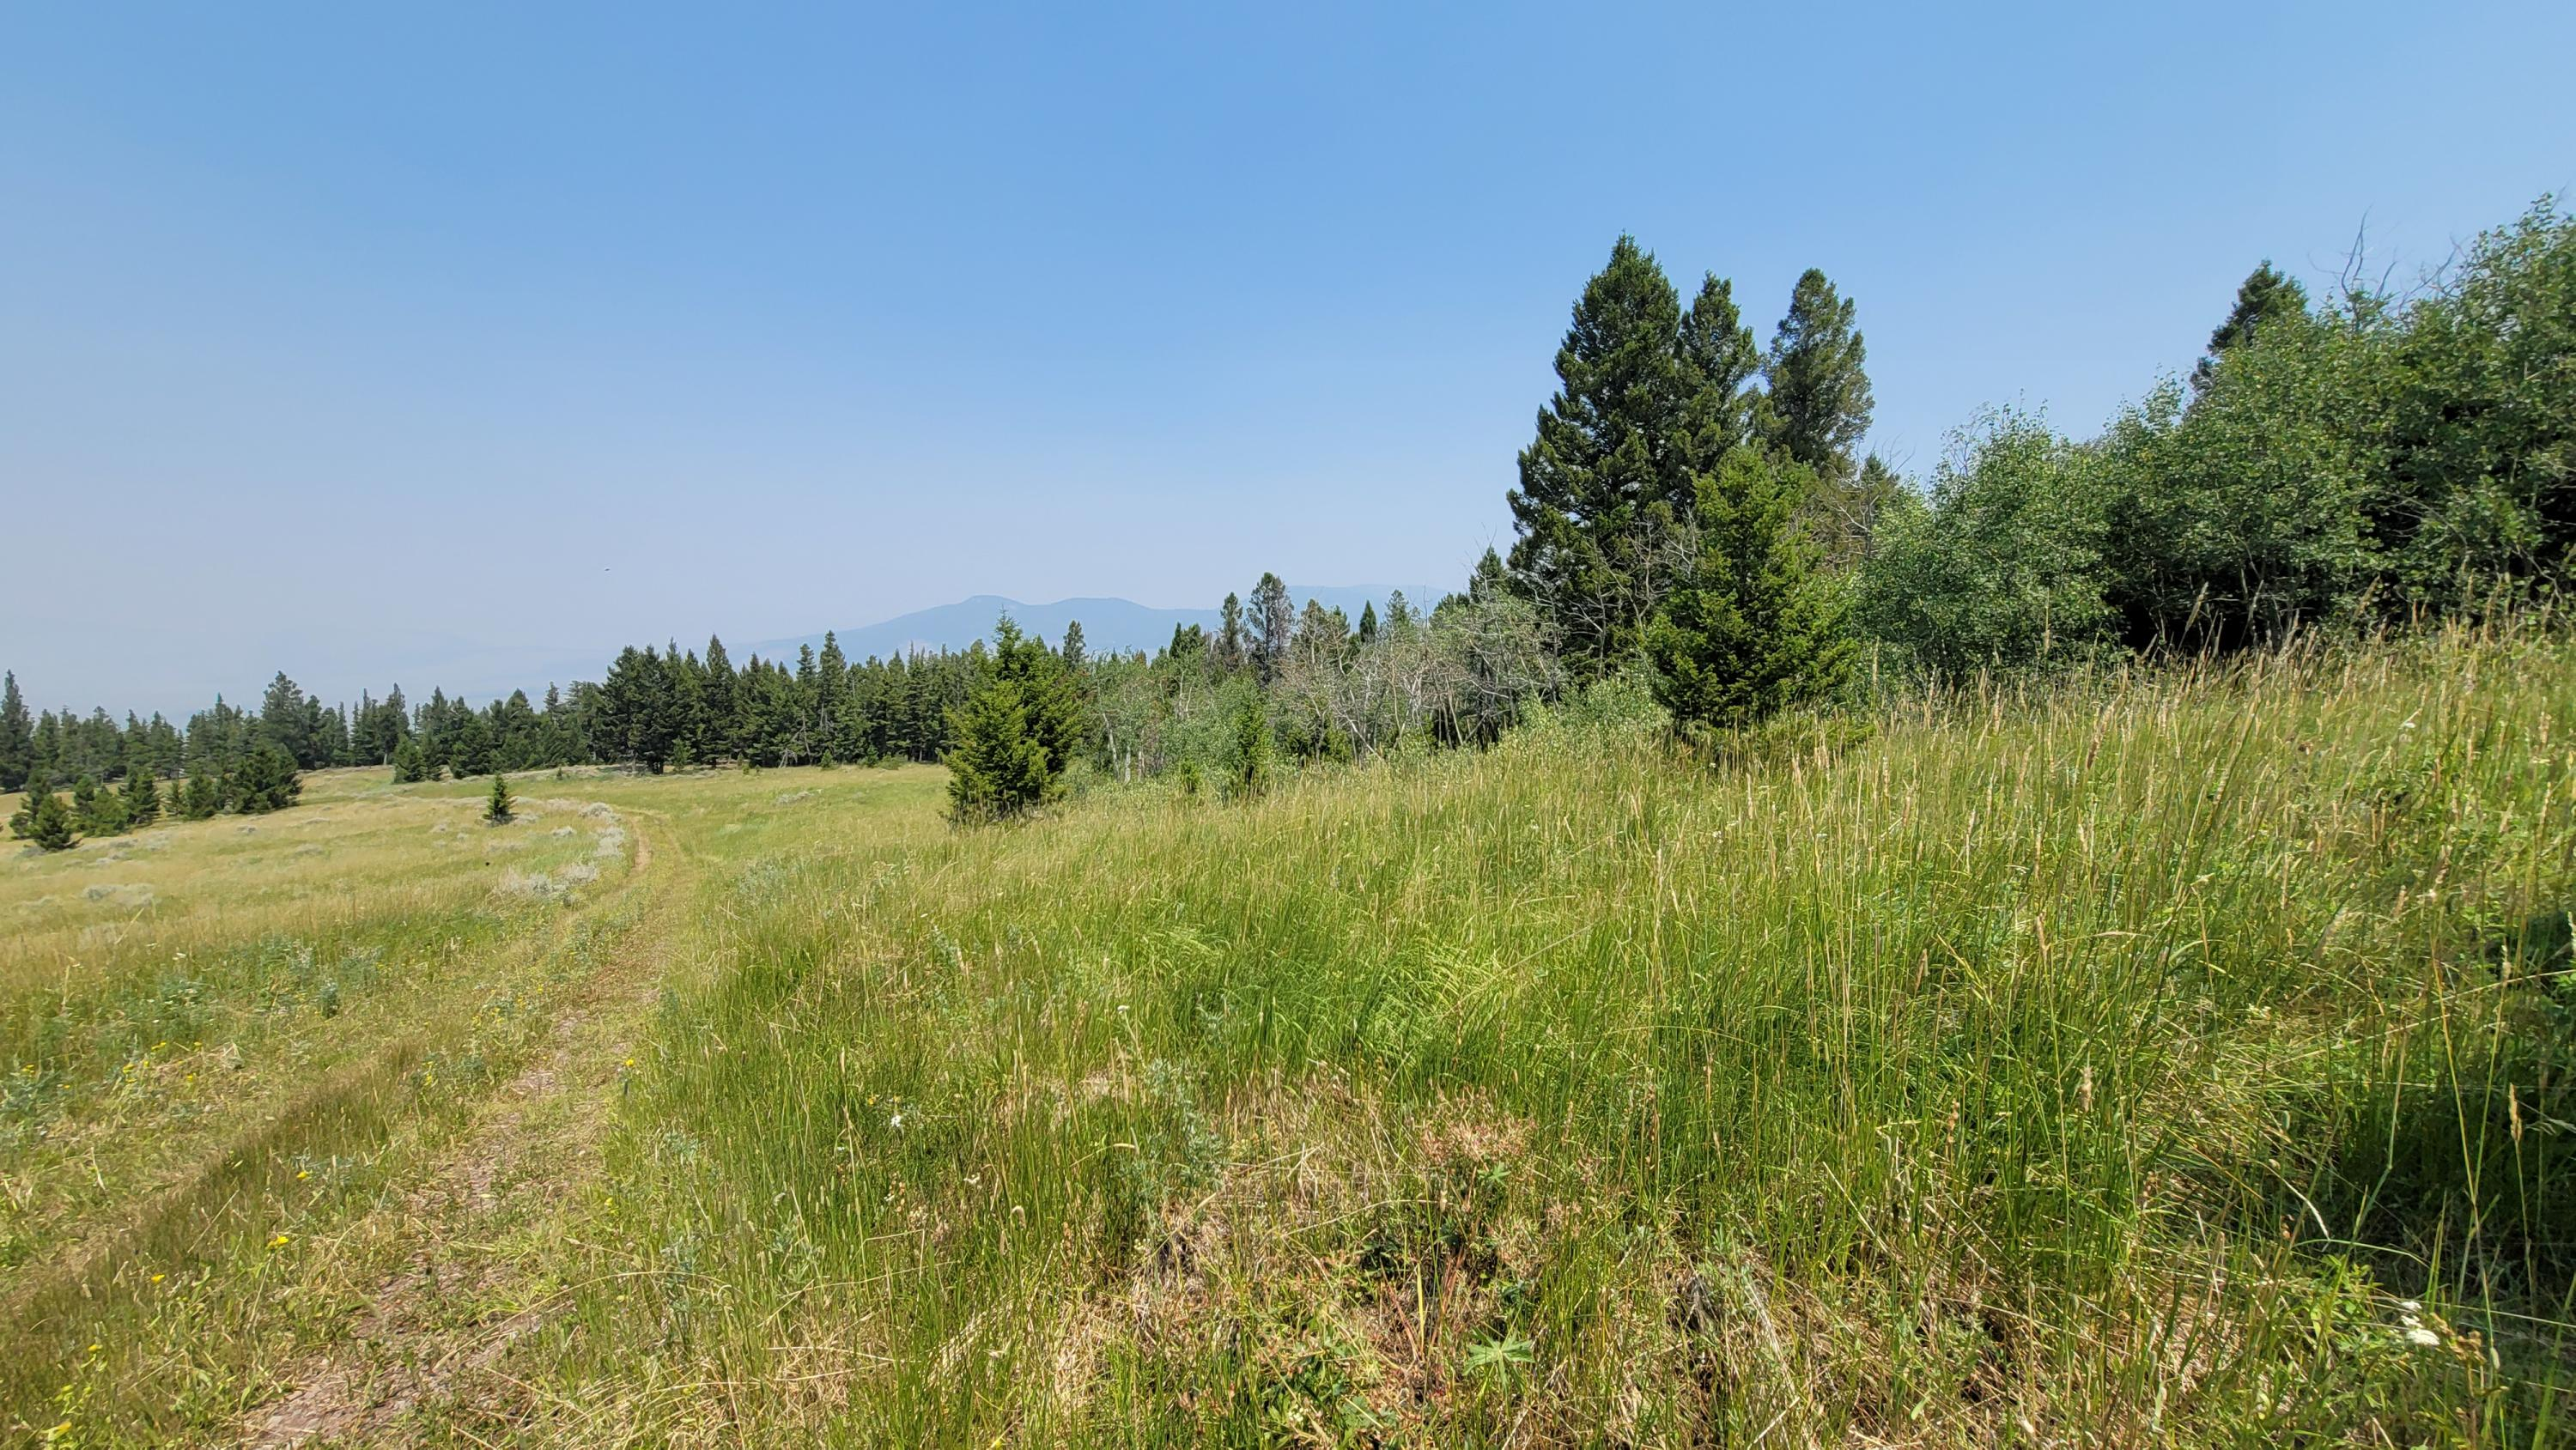 Plentiful Wildlife (Deer, Elk, Bear, Cats),Borders over 20,000 acres of Public Land,Timber, Beautiful Views of the Helmville Area, Private, Building Sites, Spring,Good Access Roads - End of the Road Lot.Call Dan & Cortney Senecal at 406-439-5414, or your real estate professional.